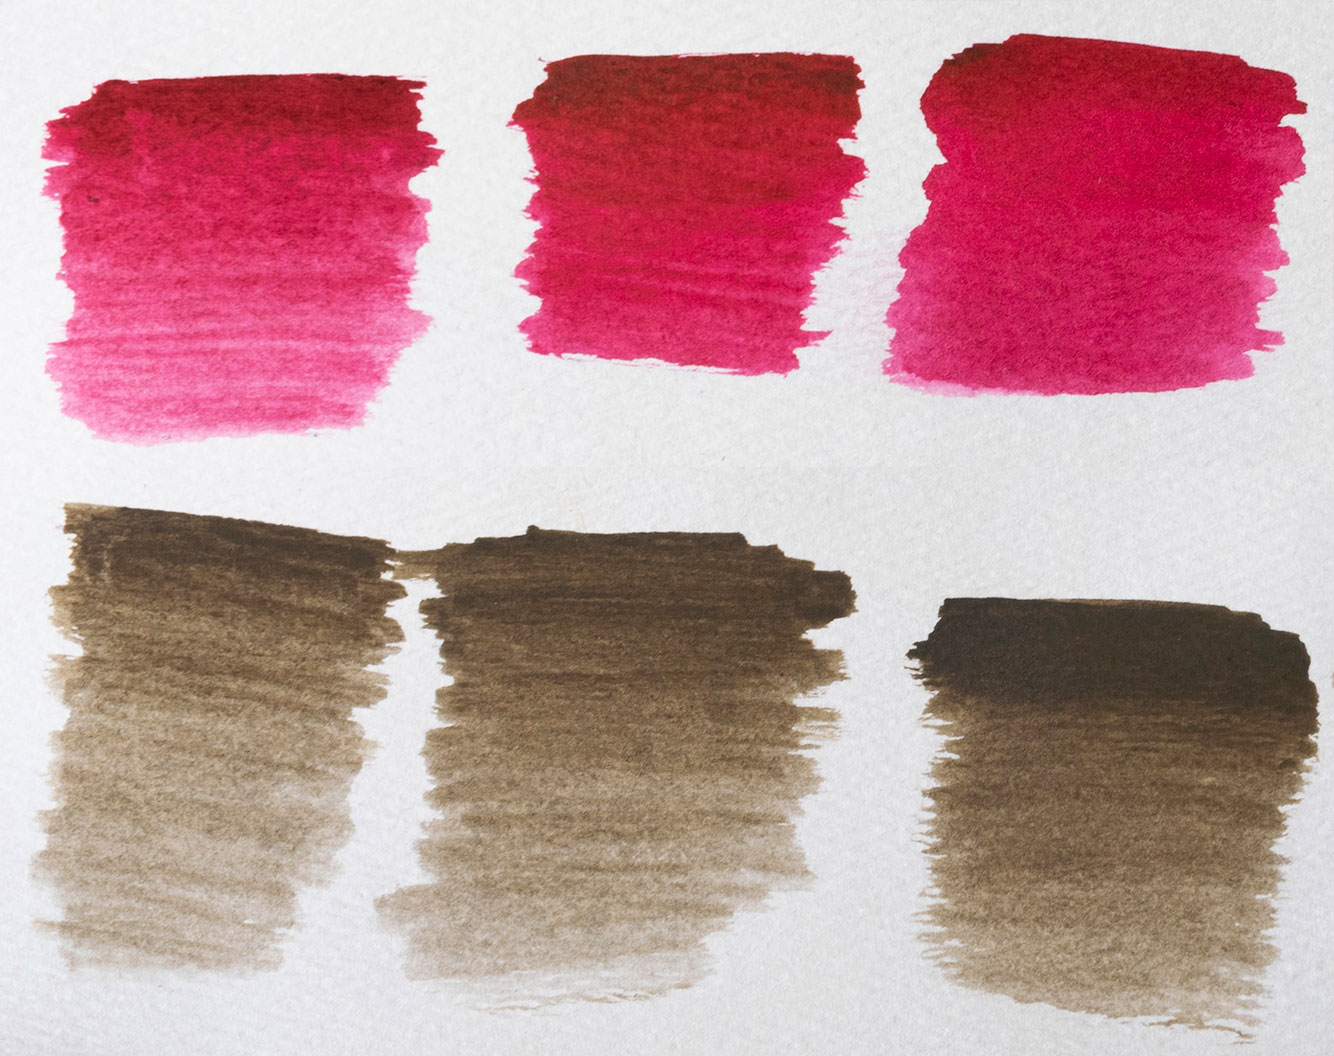 Paint outs of watercolours, both brown and red. Three samples each show the watercolour becoming more saturated and even in colour.